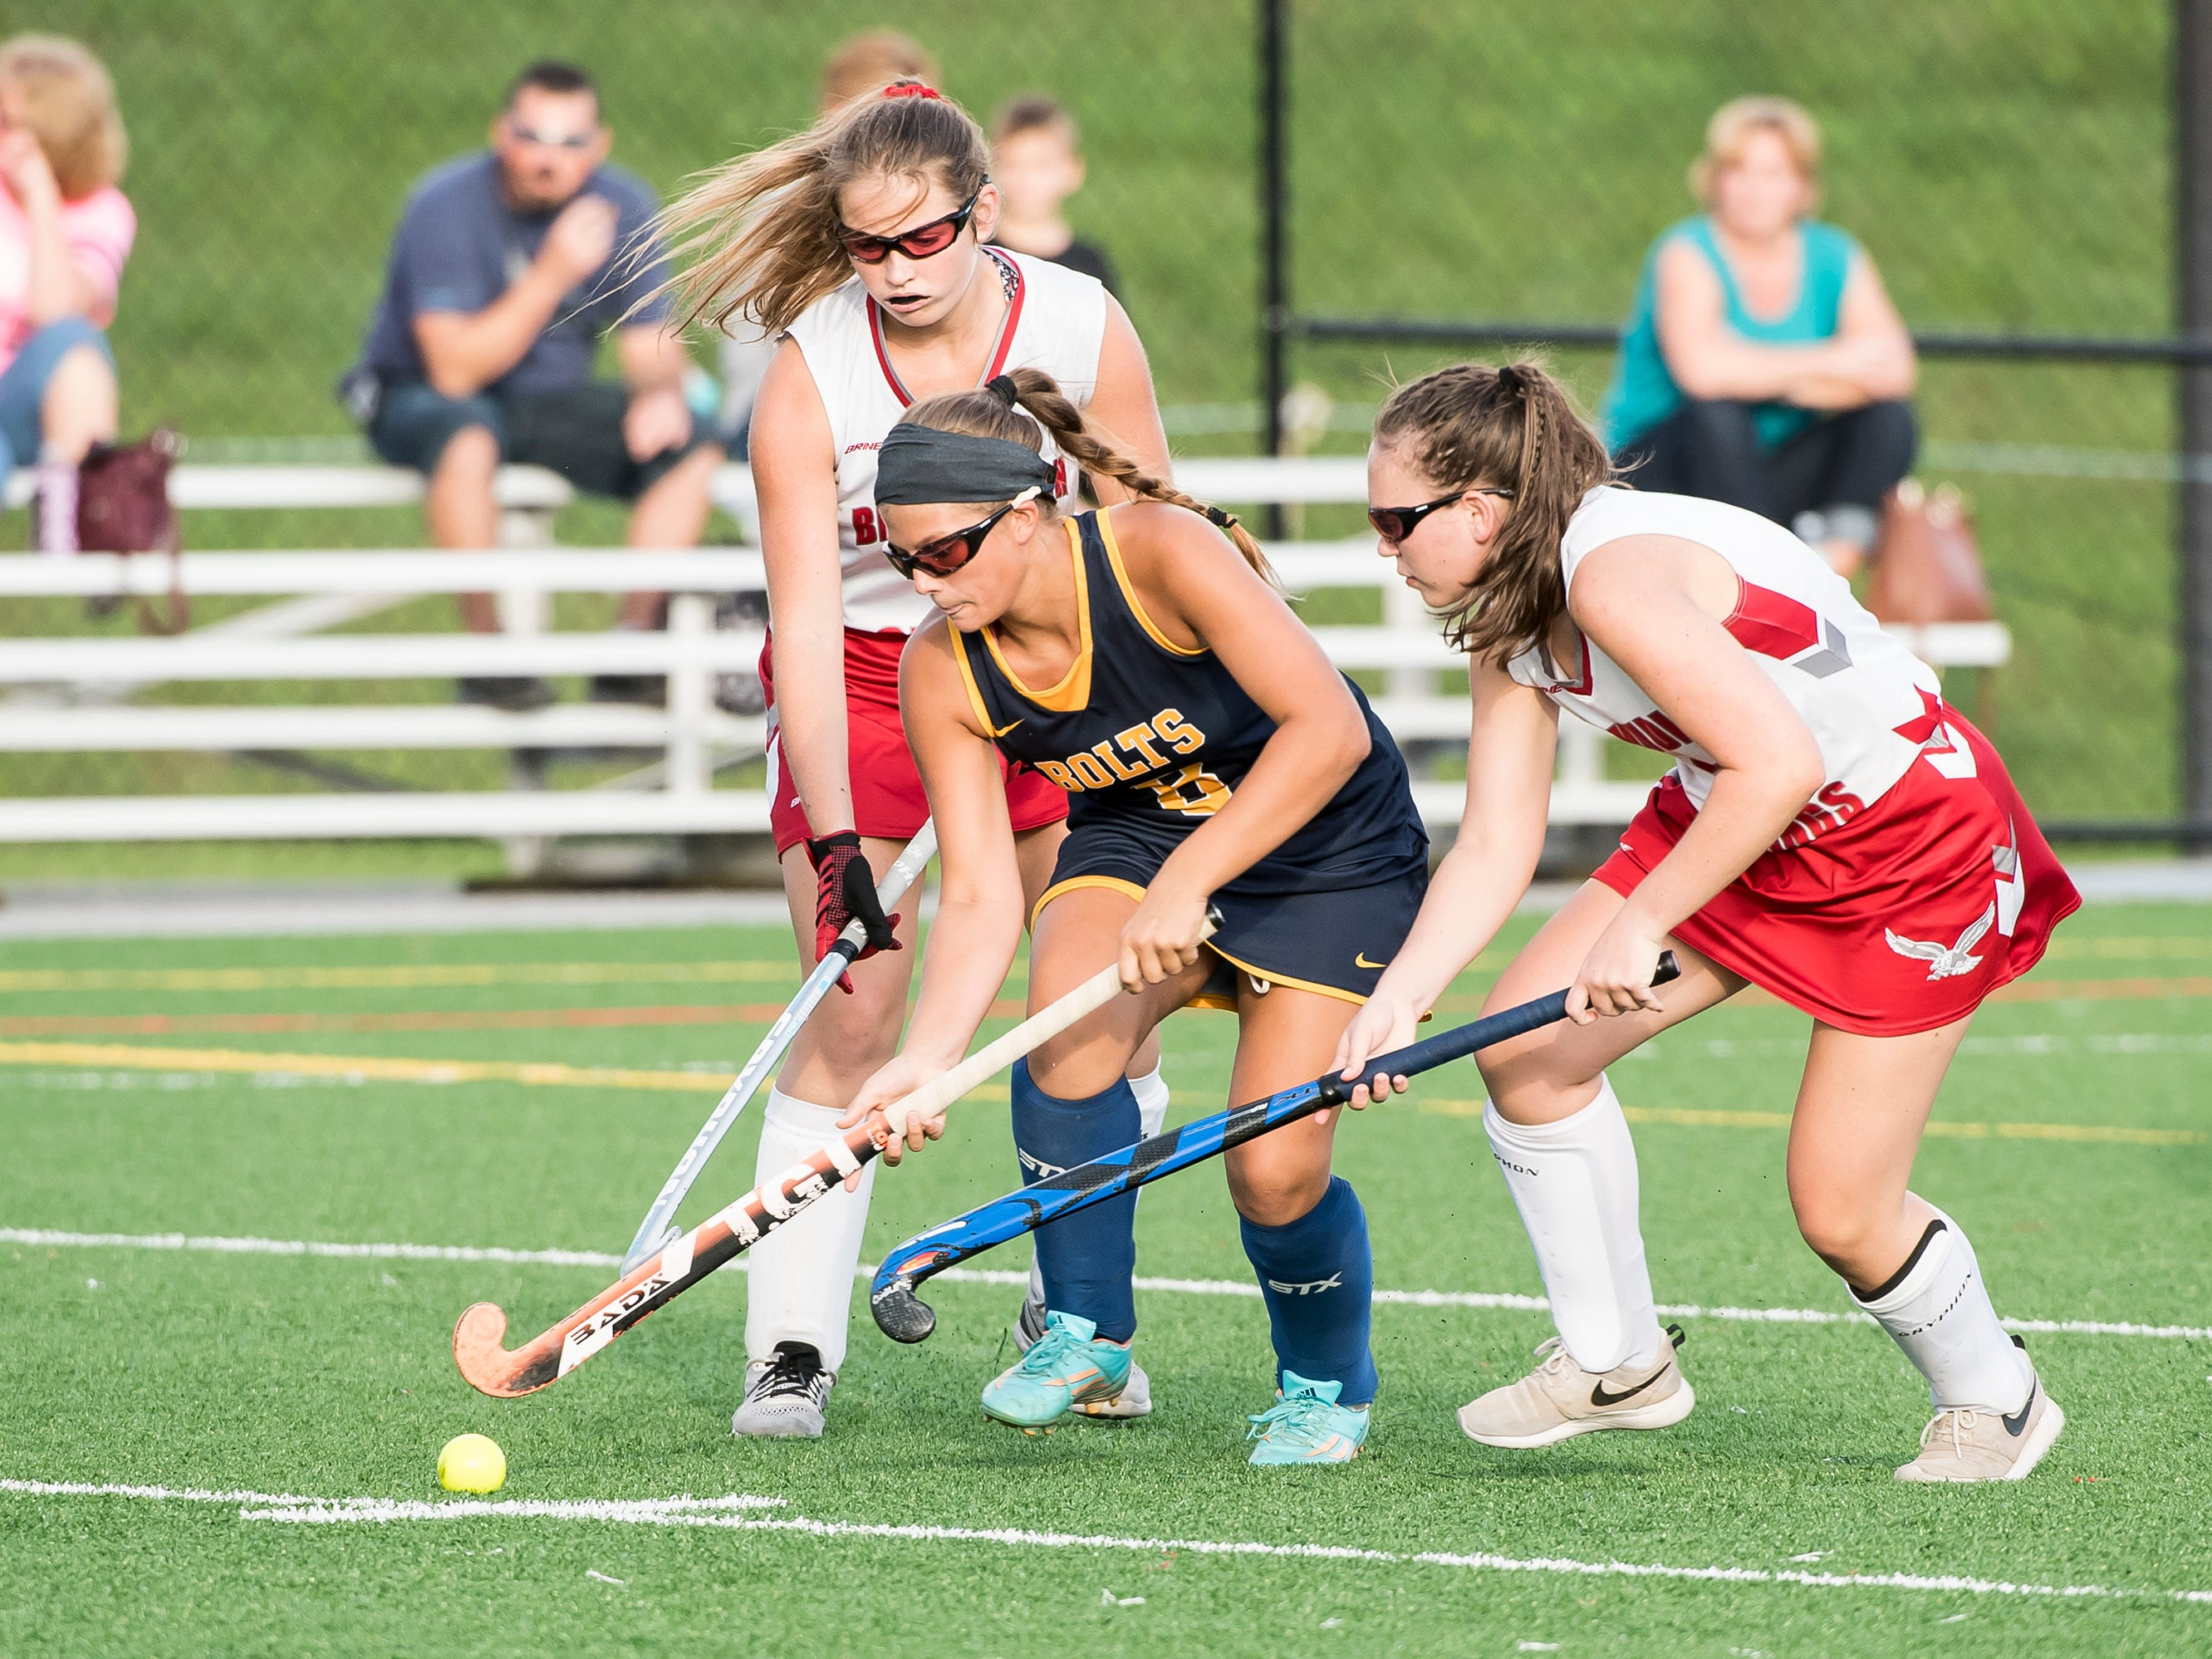 Action during a field hockey game between Bermudian Springs and Littlestown on Tuesday, October 9, 2018. The Eagles won 4-0.